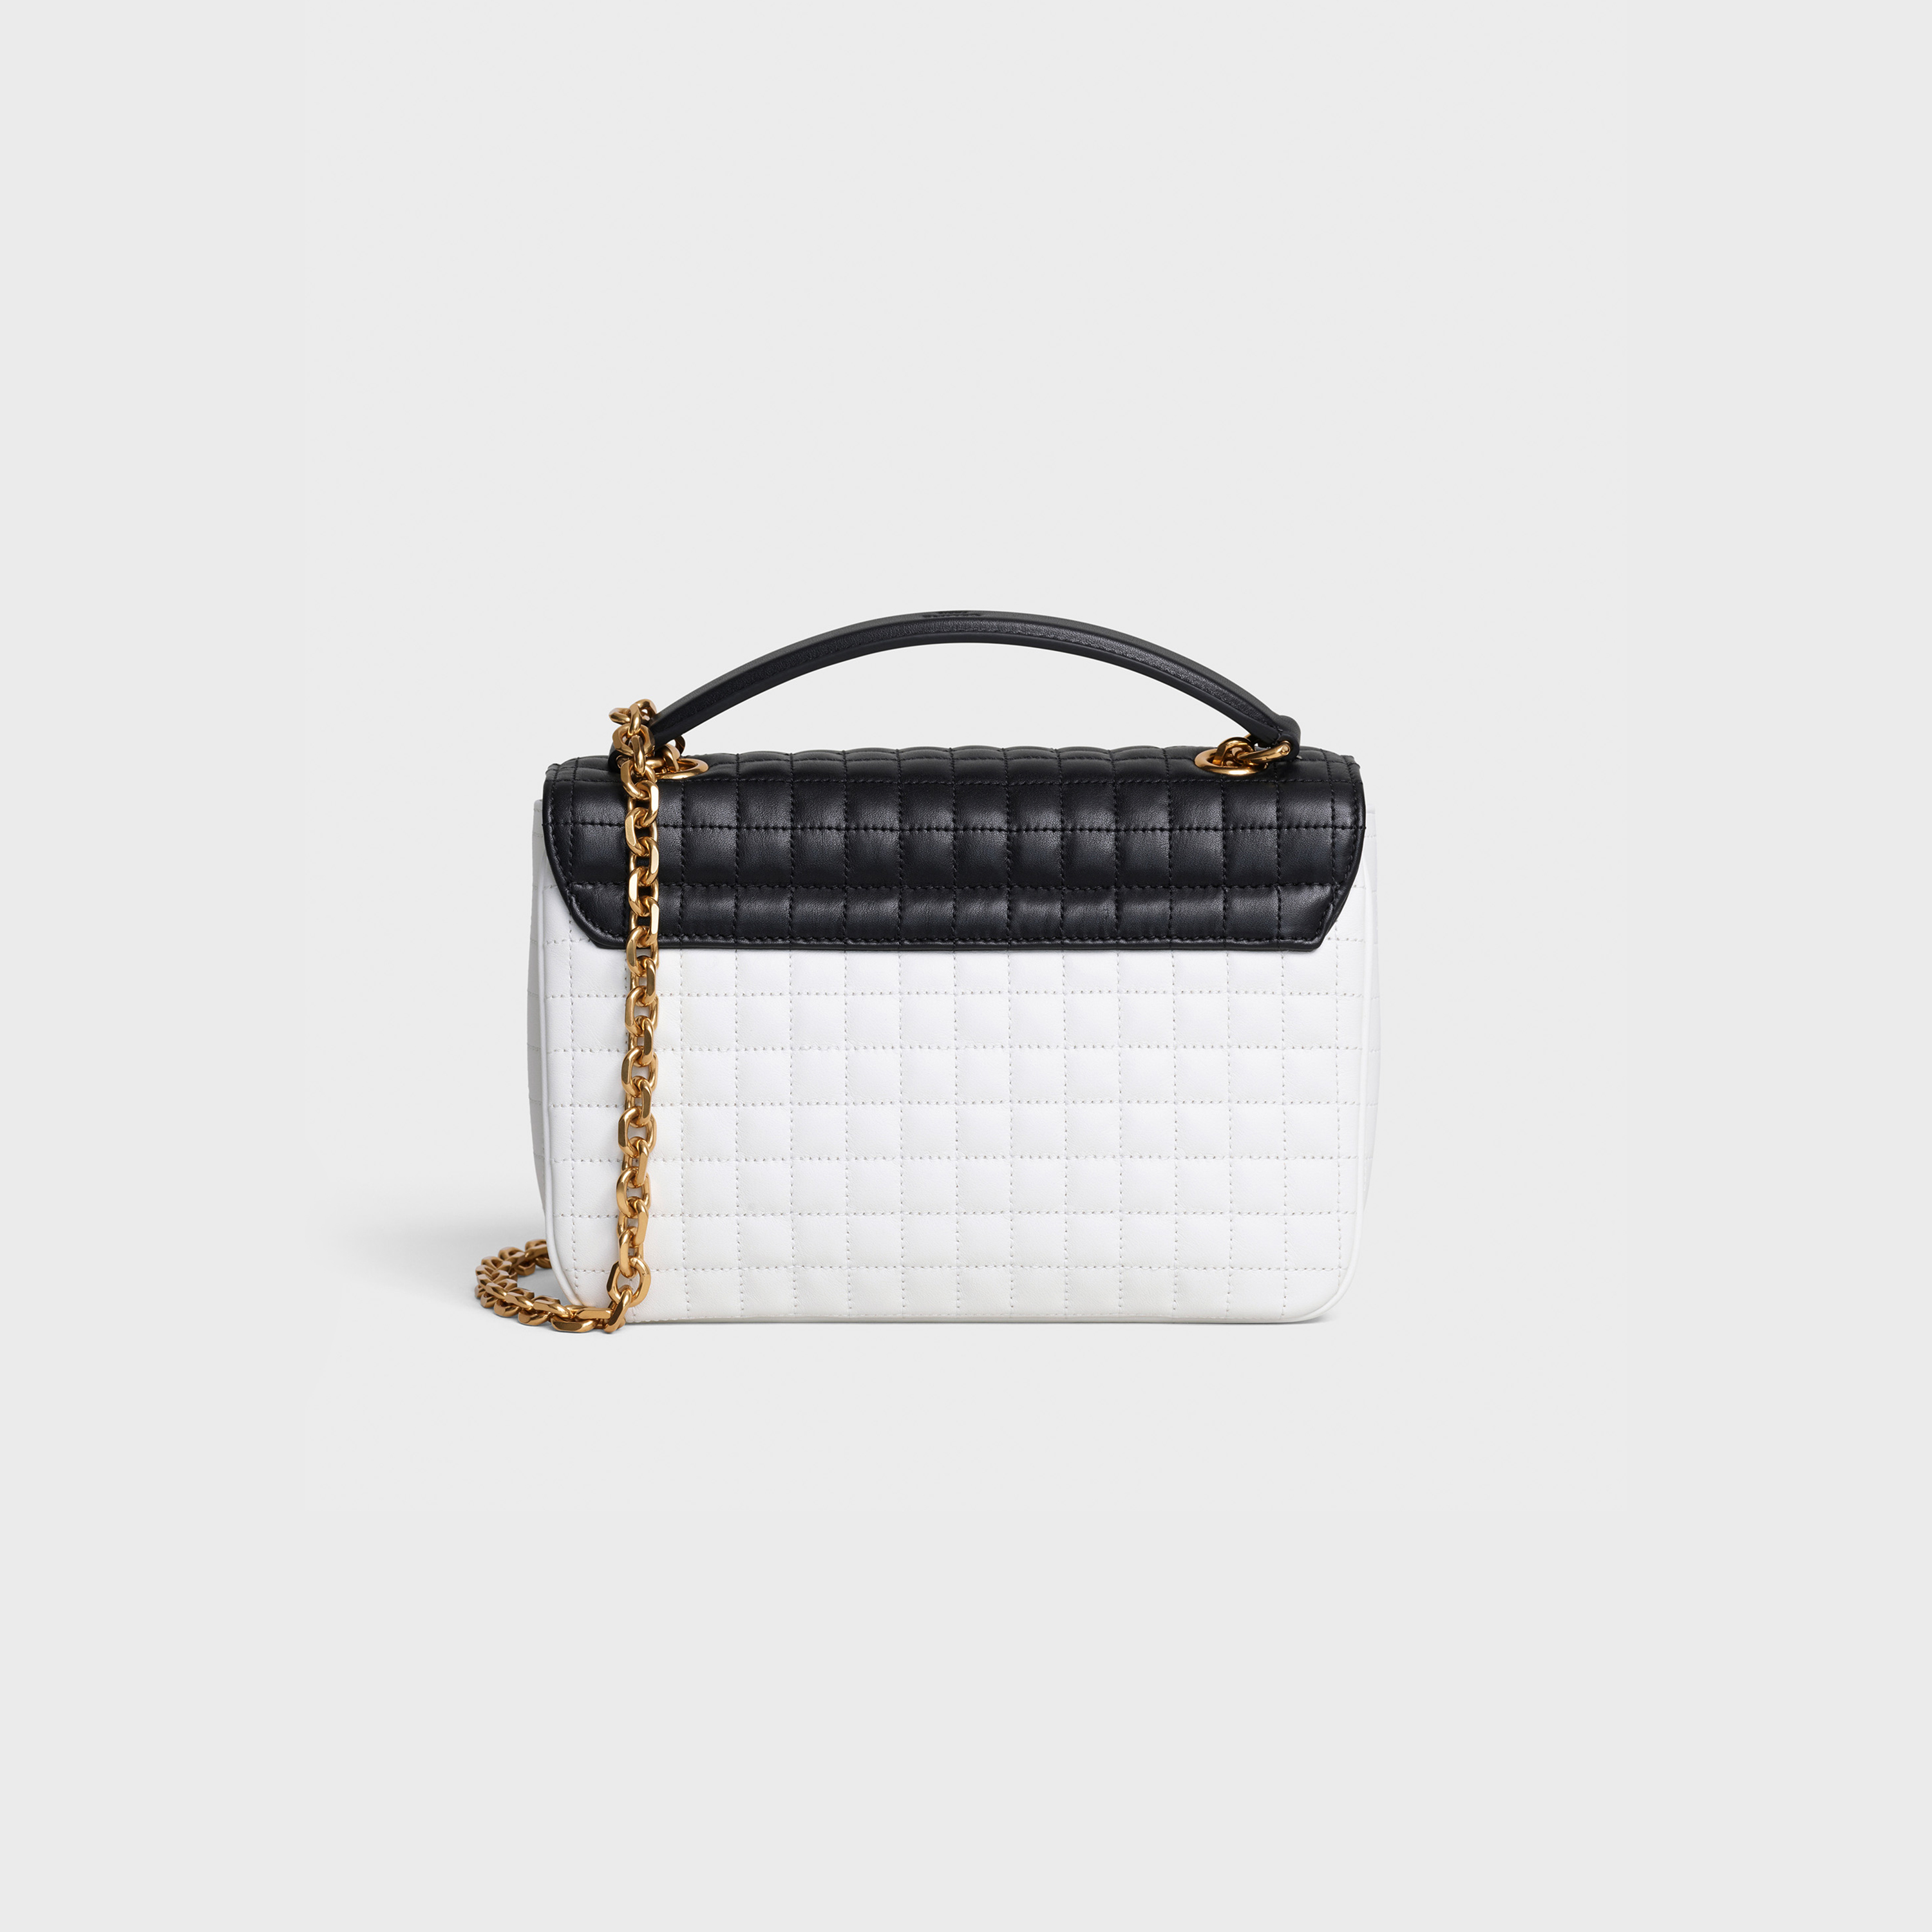 Medium C Bag in bicolour quilted calfskin | CELINE